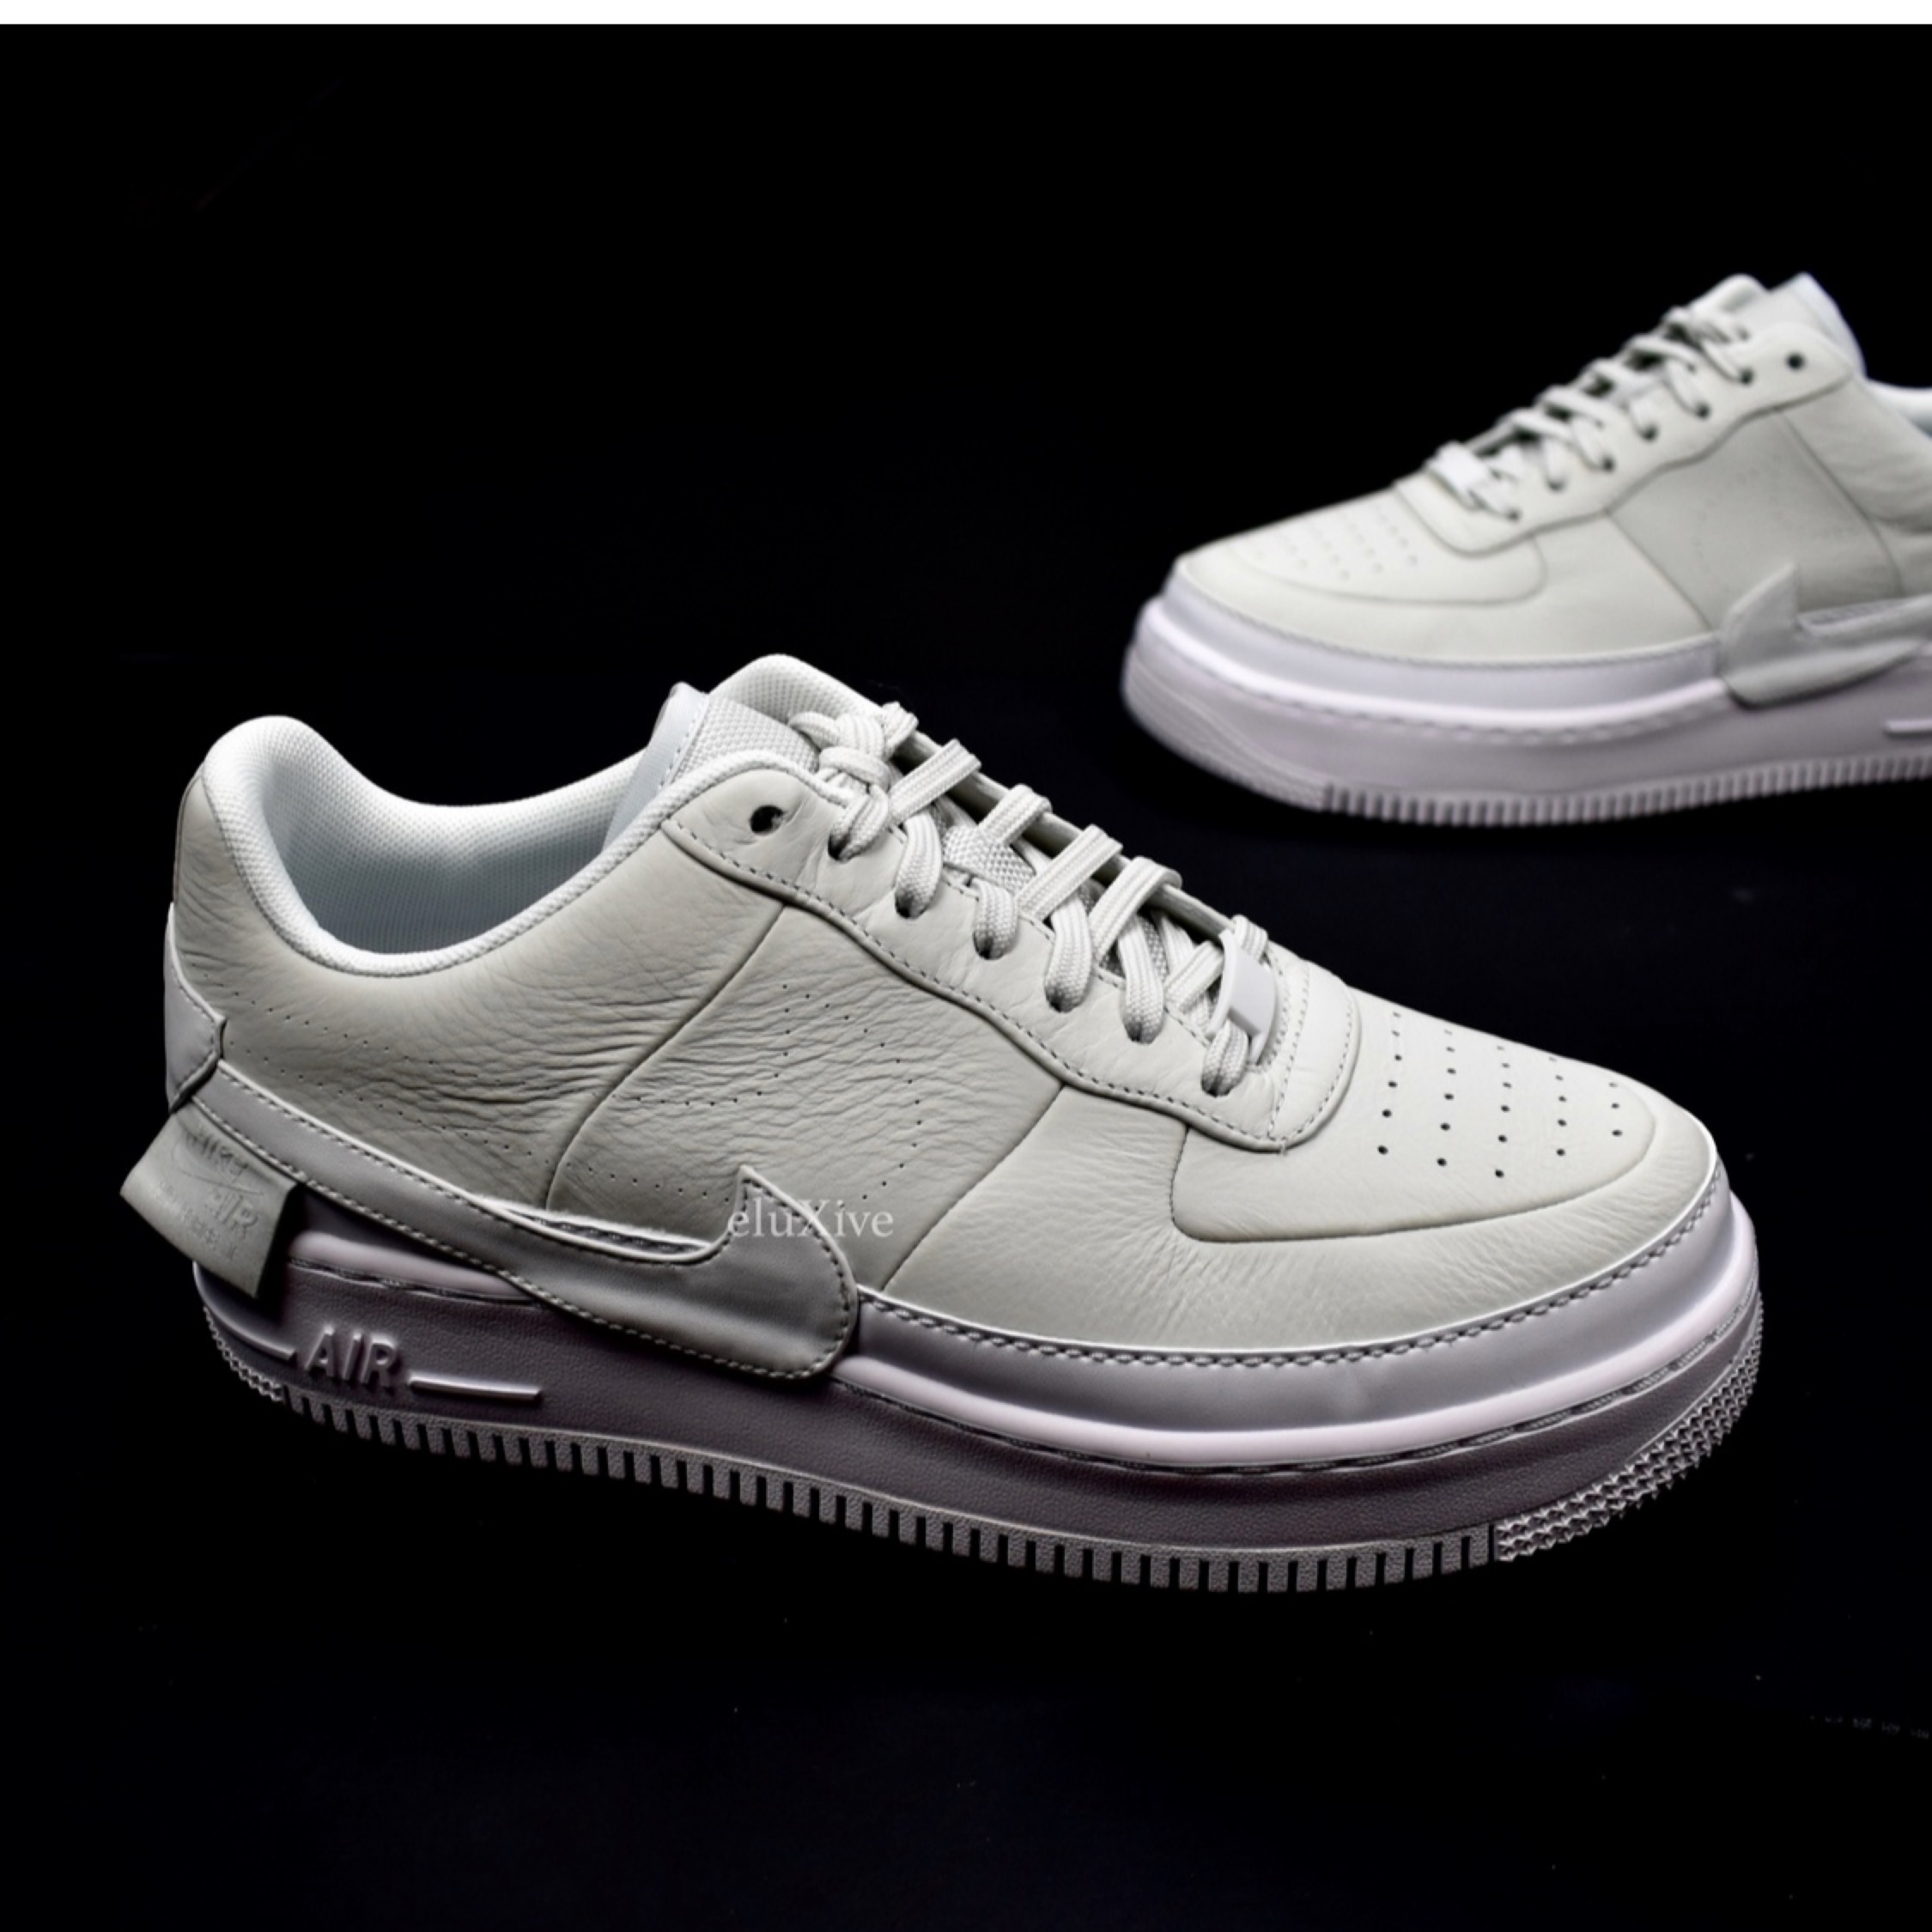 premium selection 281b0 ebb1a Nike Air Force 1 Jester Xx Off White 8.5